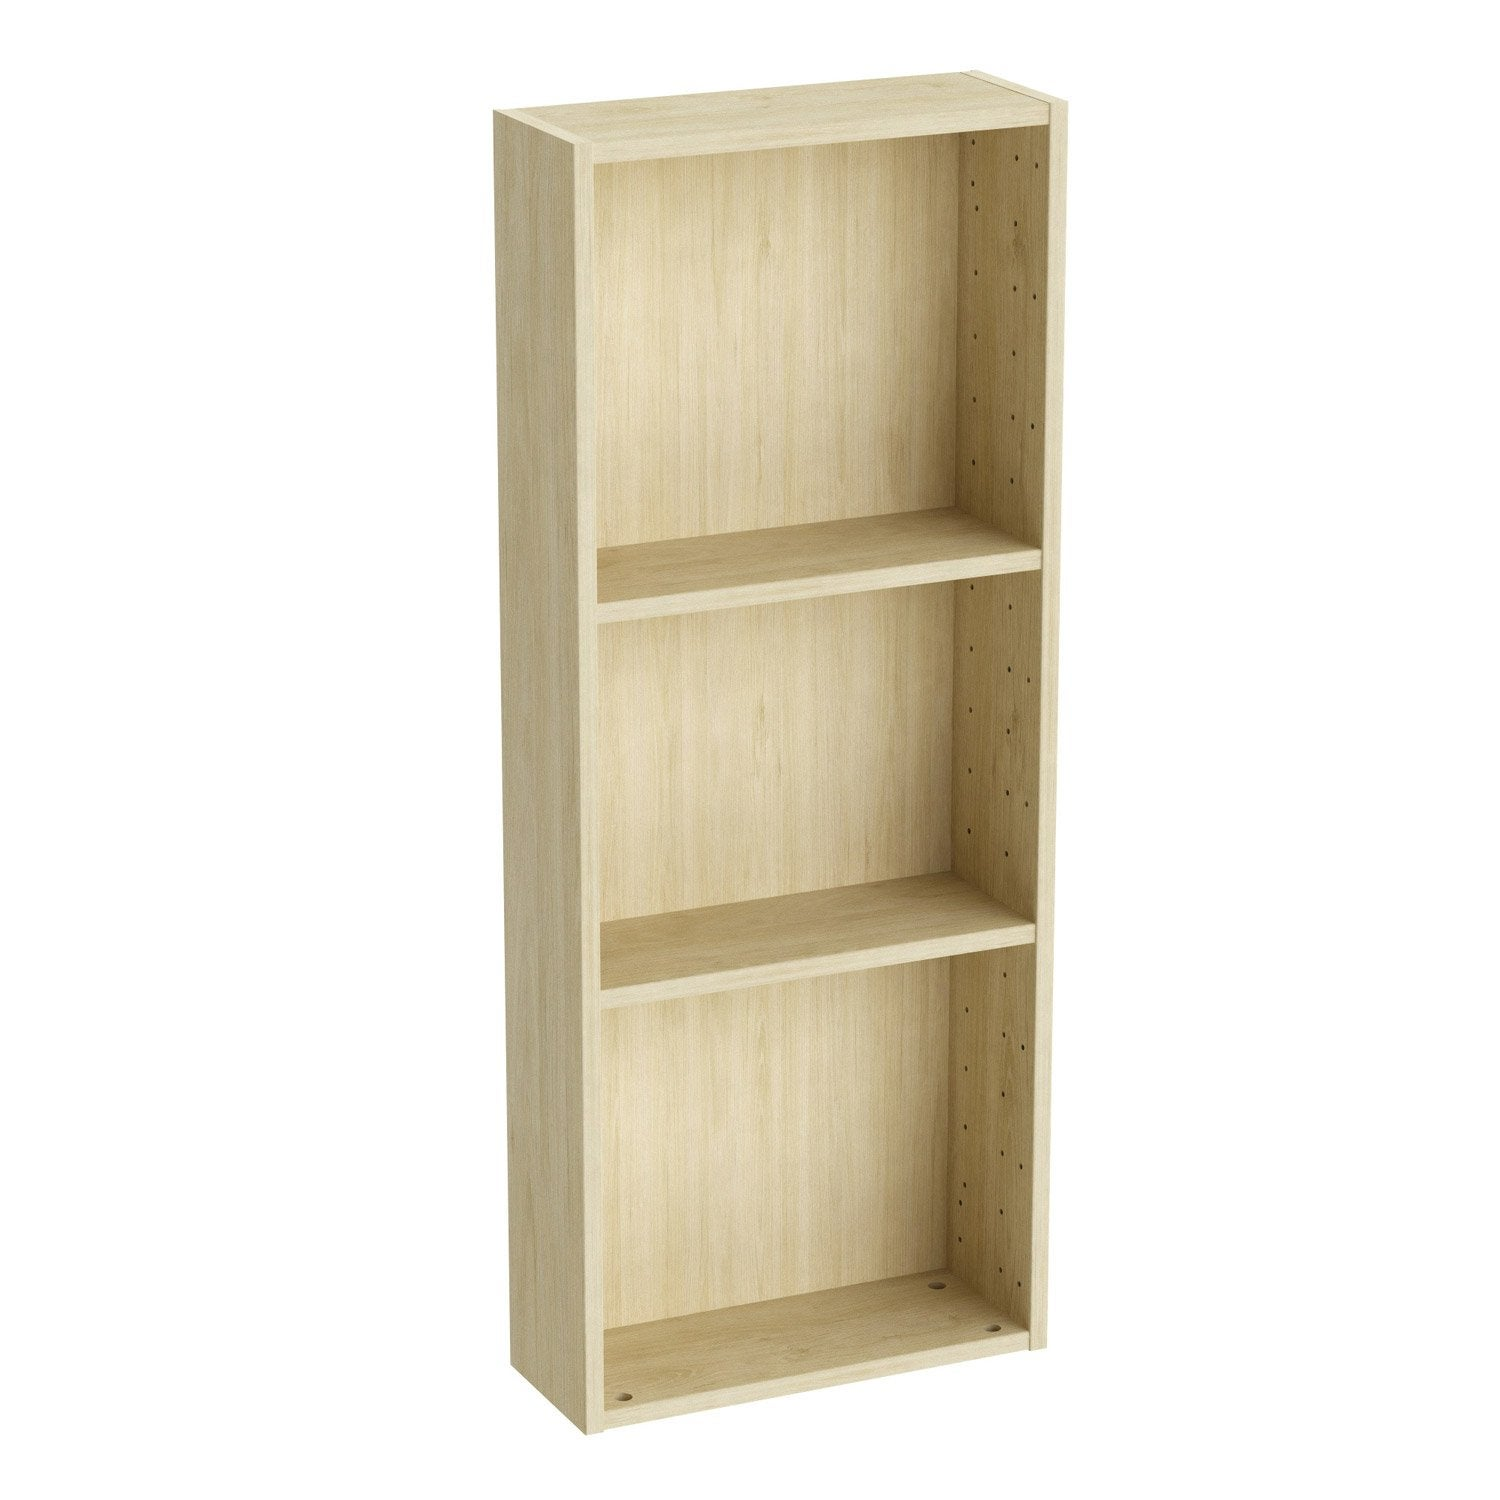 etonnant etagere 15 cm profondeur 4 caisson spaceo home 200 x 40 x 15 cm effet ch ne naturel. Black Bedroom Furniture Sets. Home Design Ideas